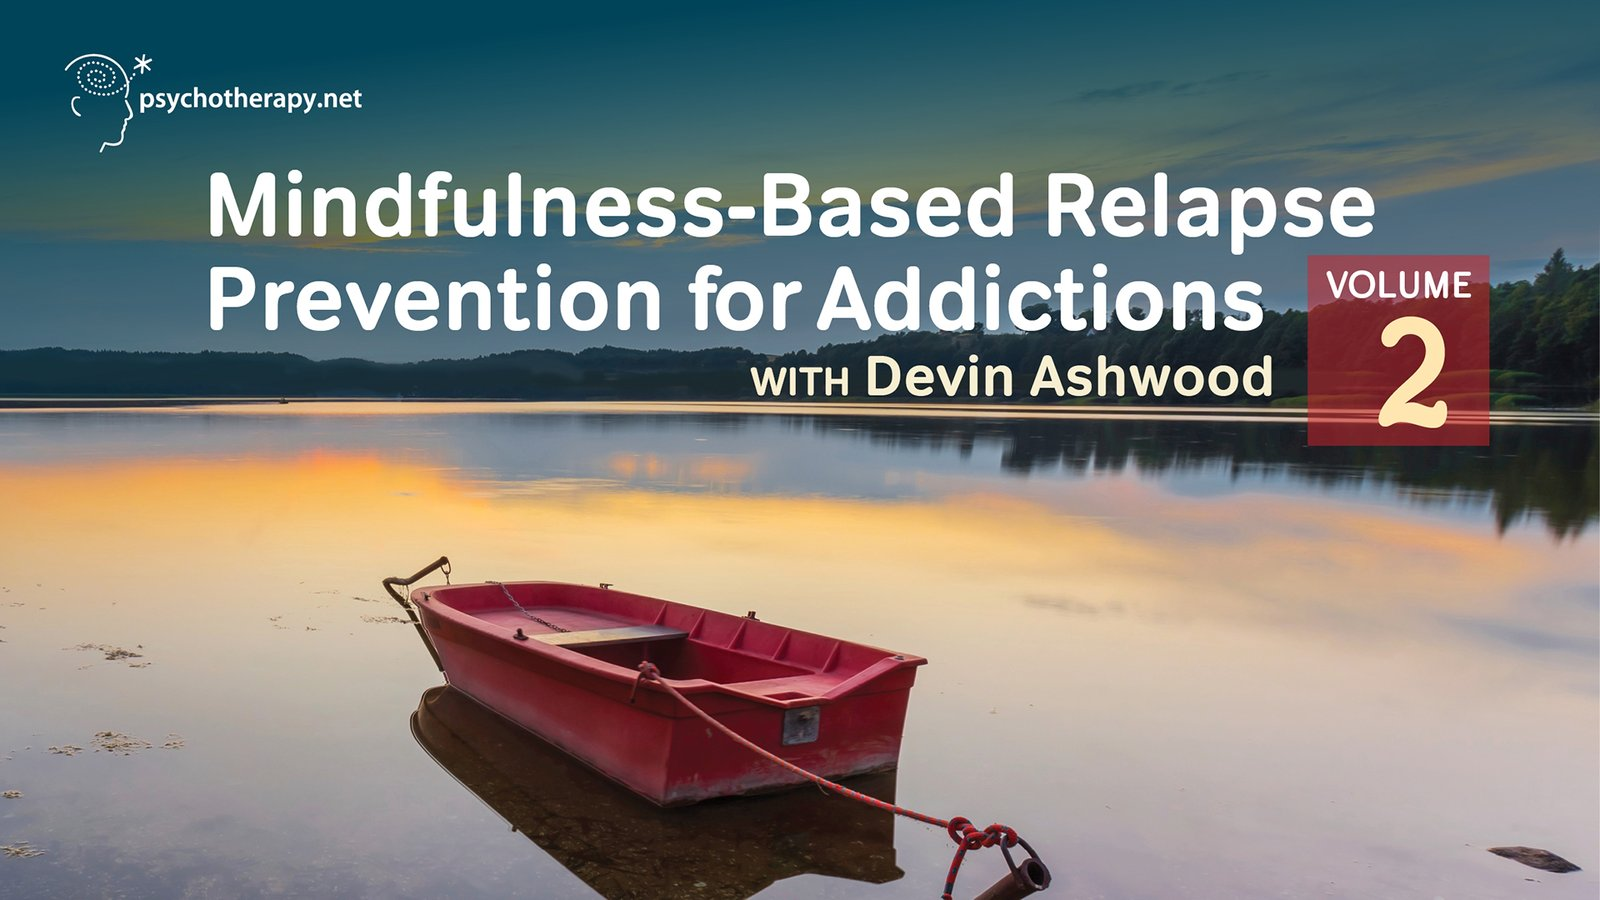 Mindfulness-Based Relapse Prevention for Addictions Volume II